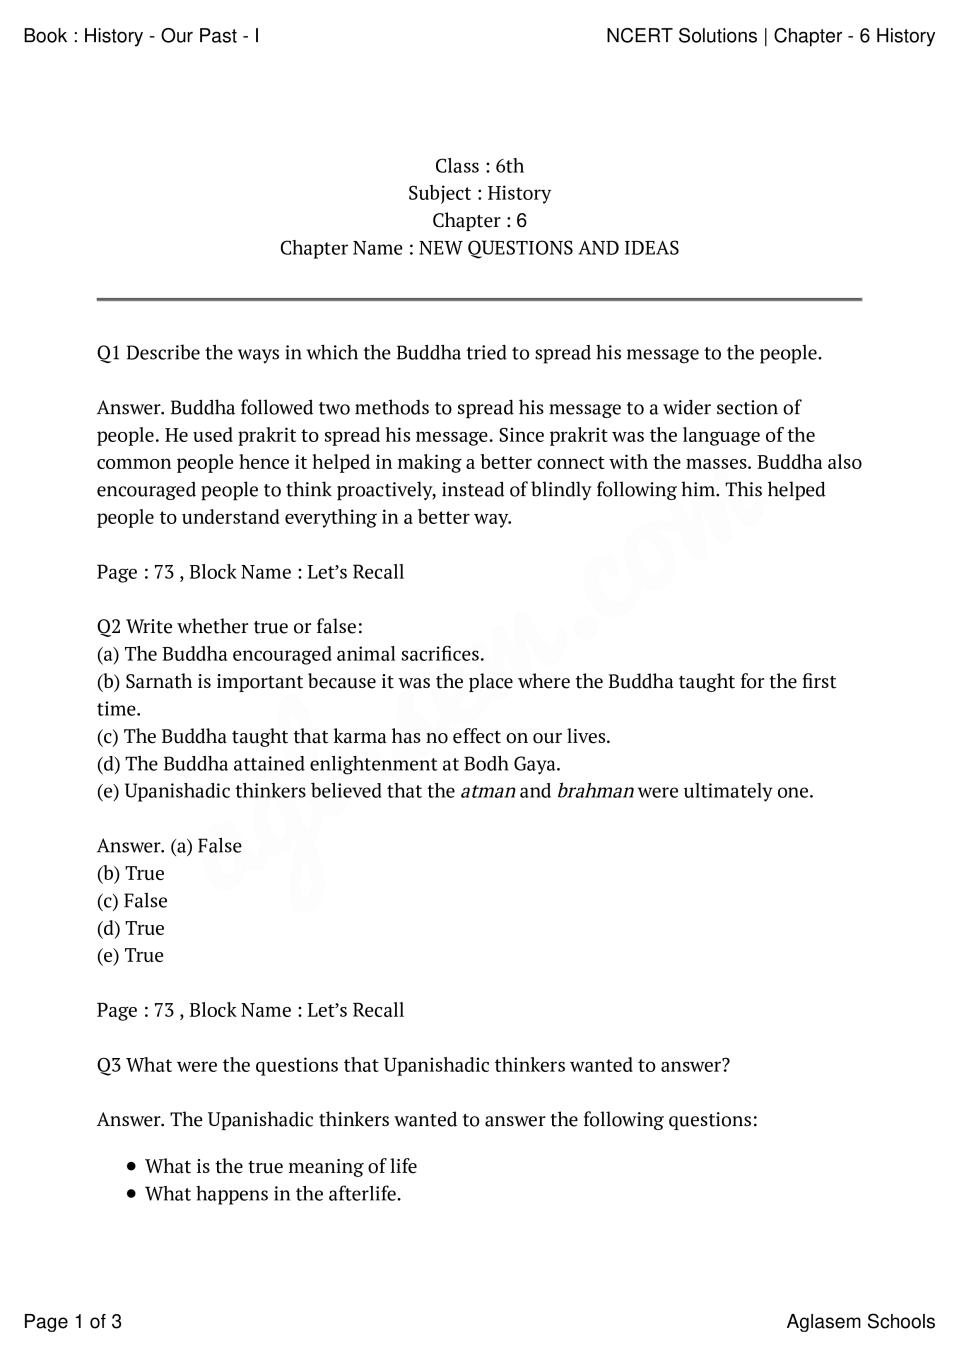 NCERT Solutions Class 6 History Chapter 6 New Questions And